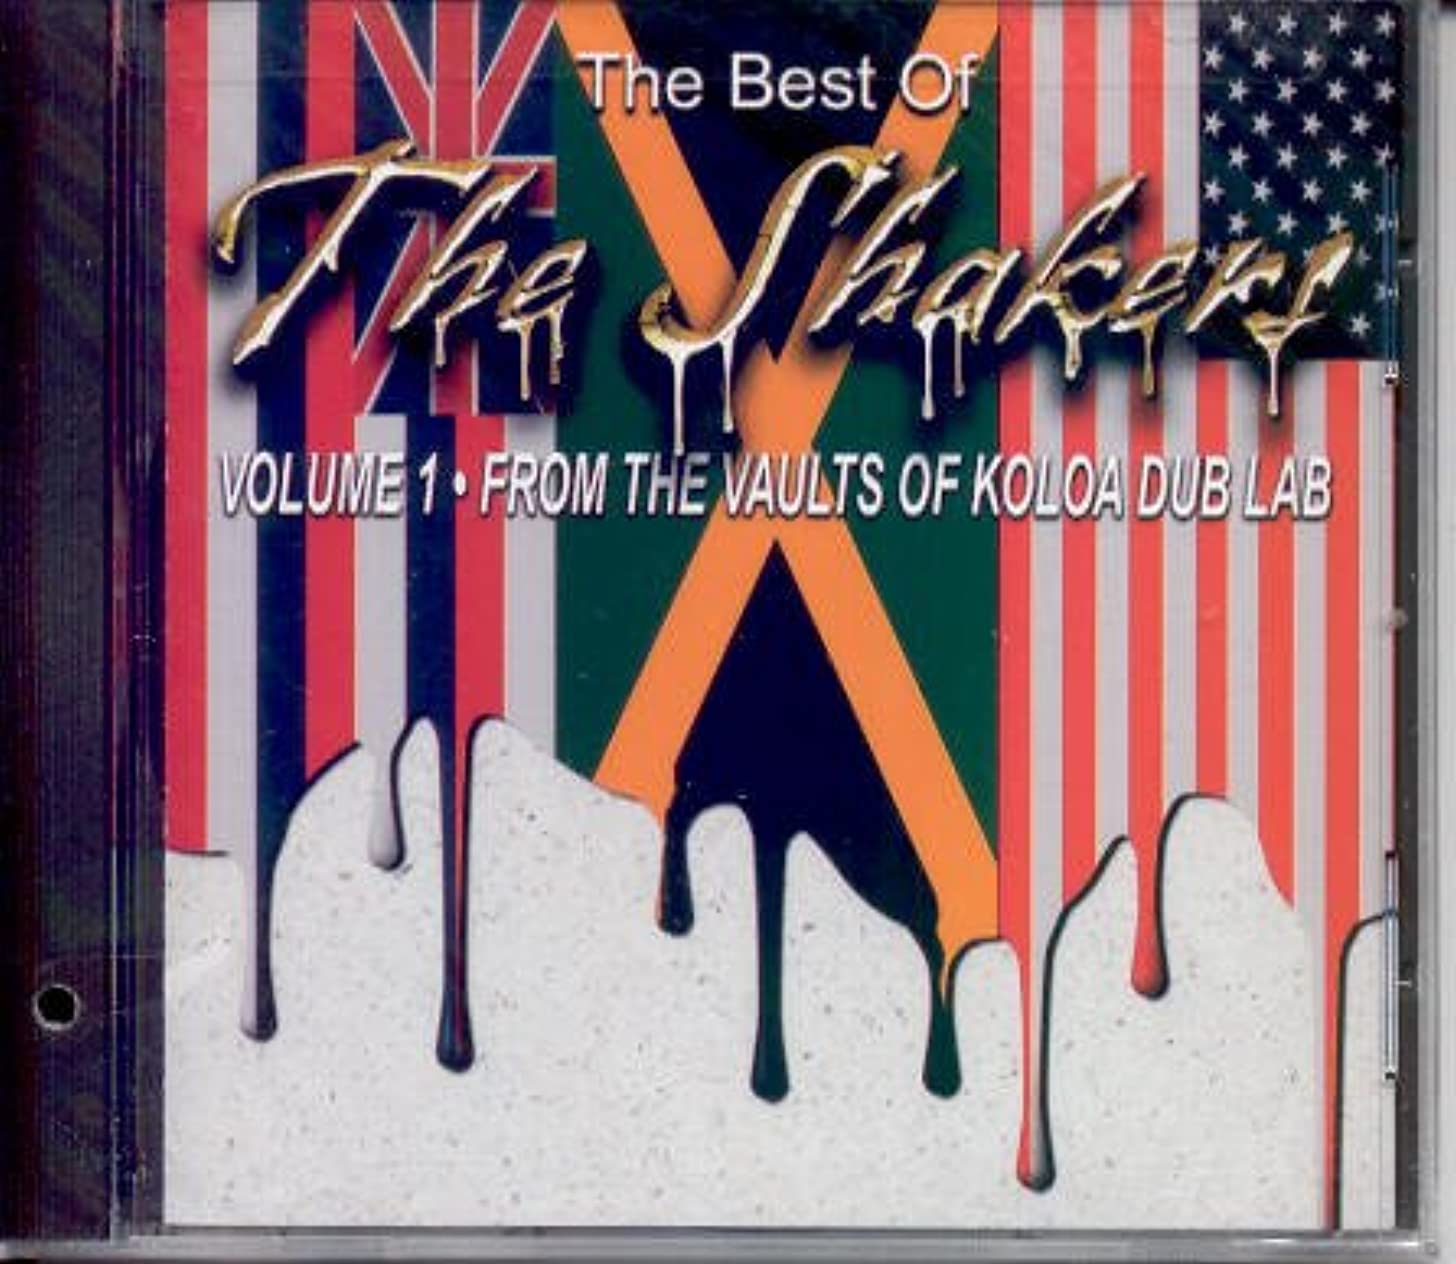 The Best of the Shakers - Volume 1 : From the Vaults of Koloa Dub Lab